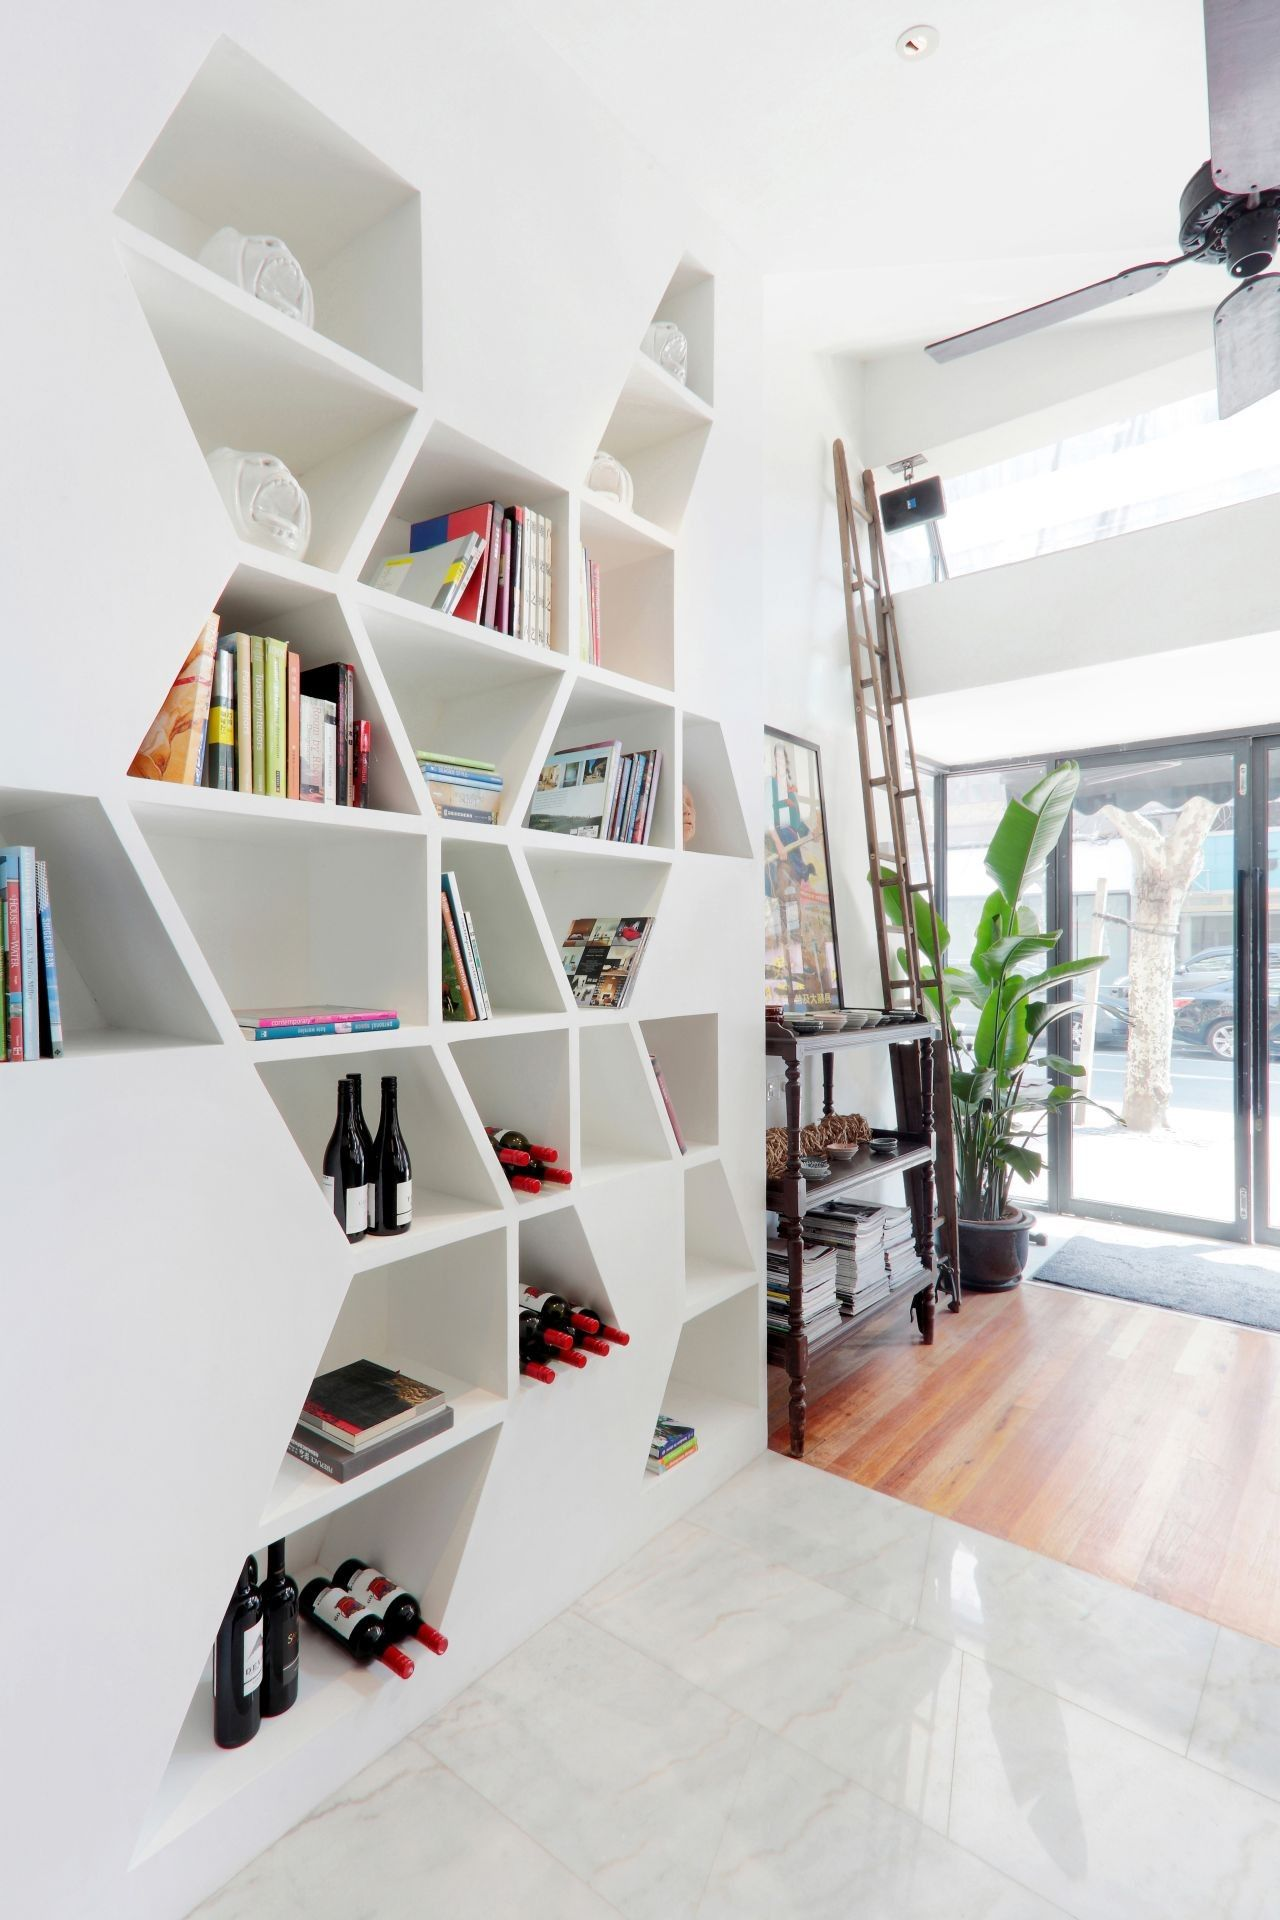 Daga Cafe Geometric Bookshelf Design In White